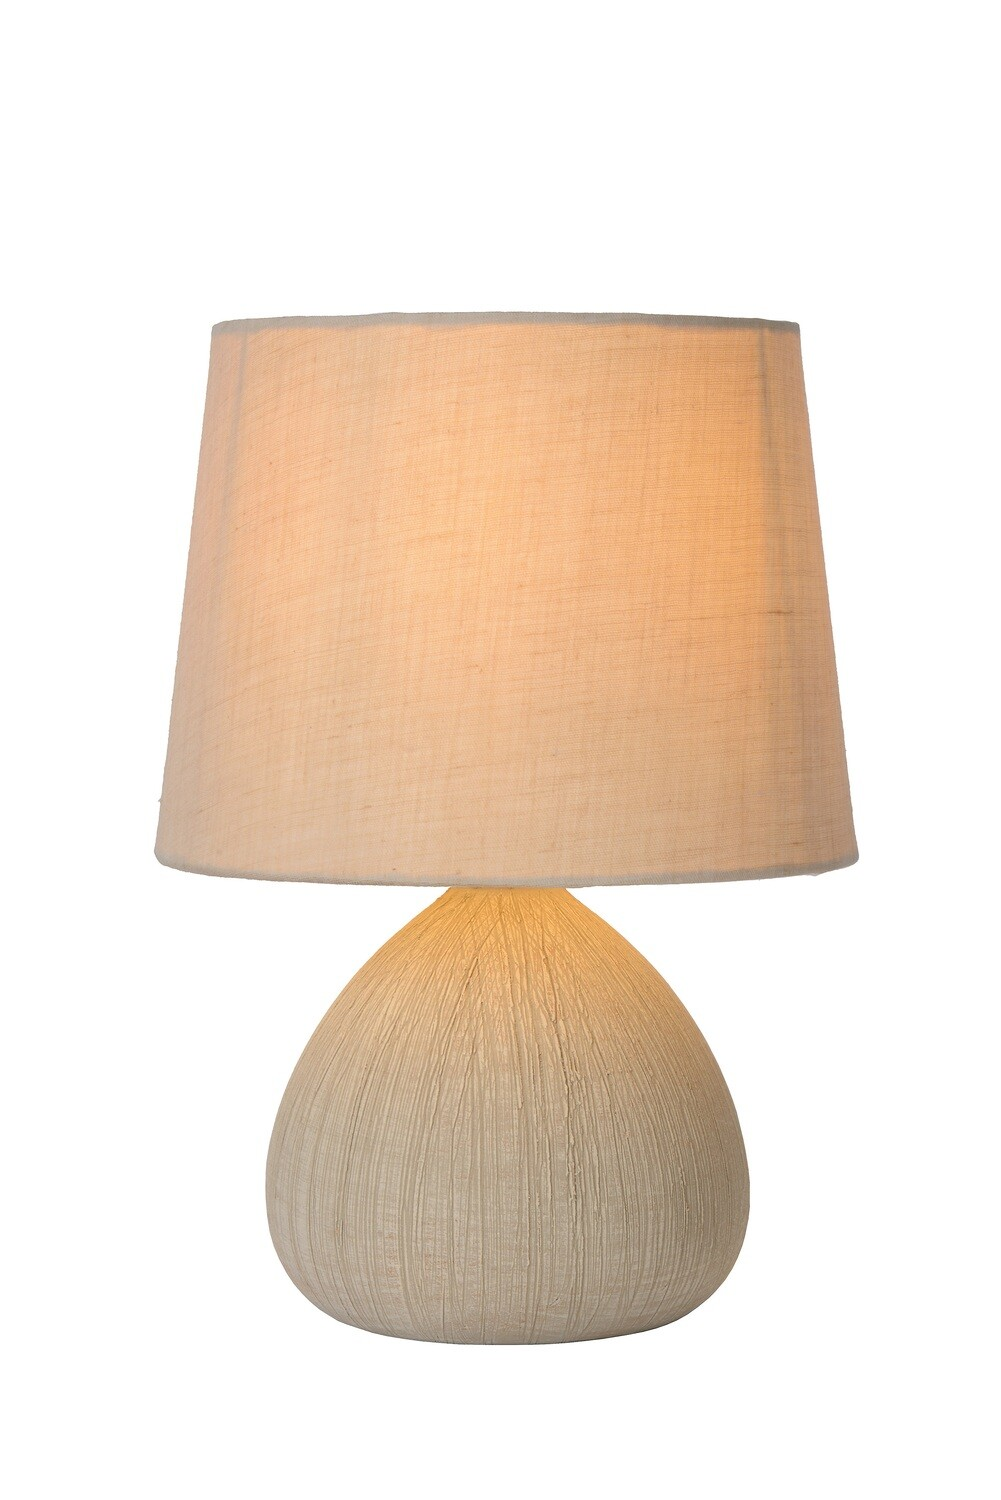 RAMZI Table lamp Ø 18 cm 1xE14 Cream